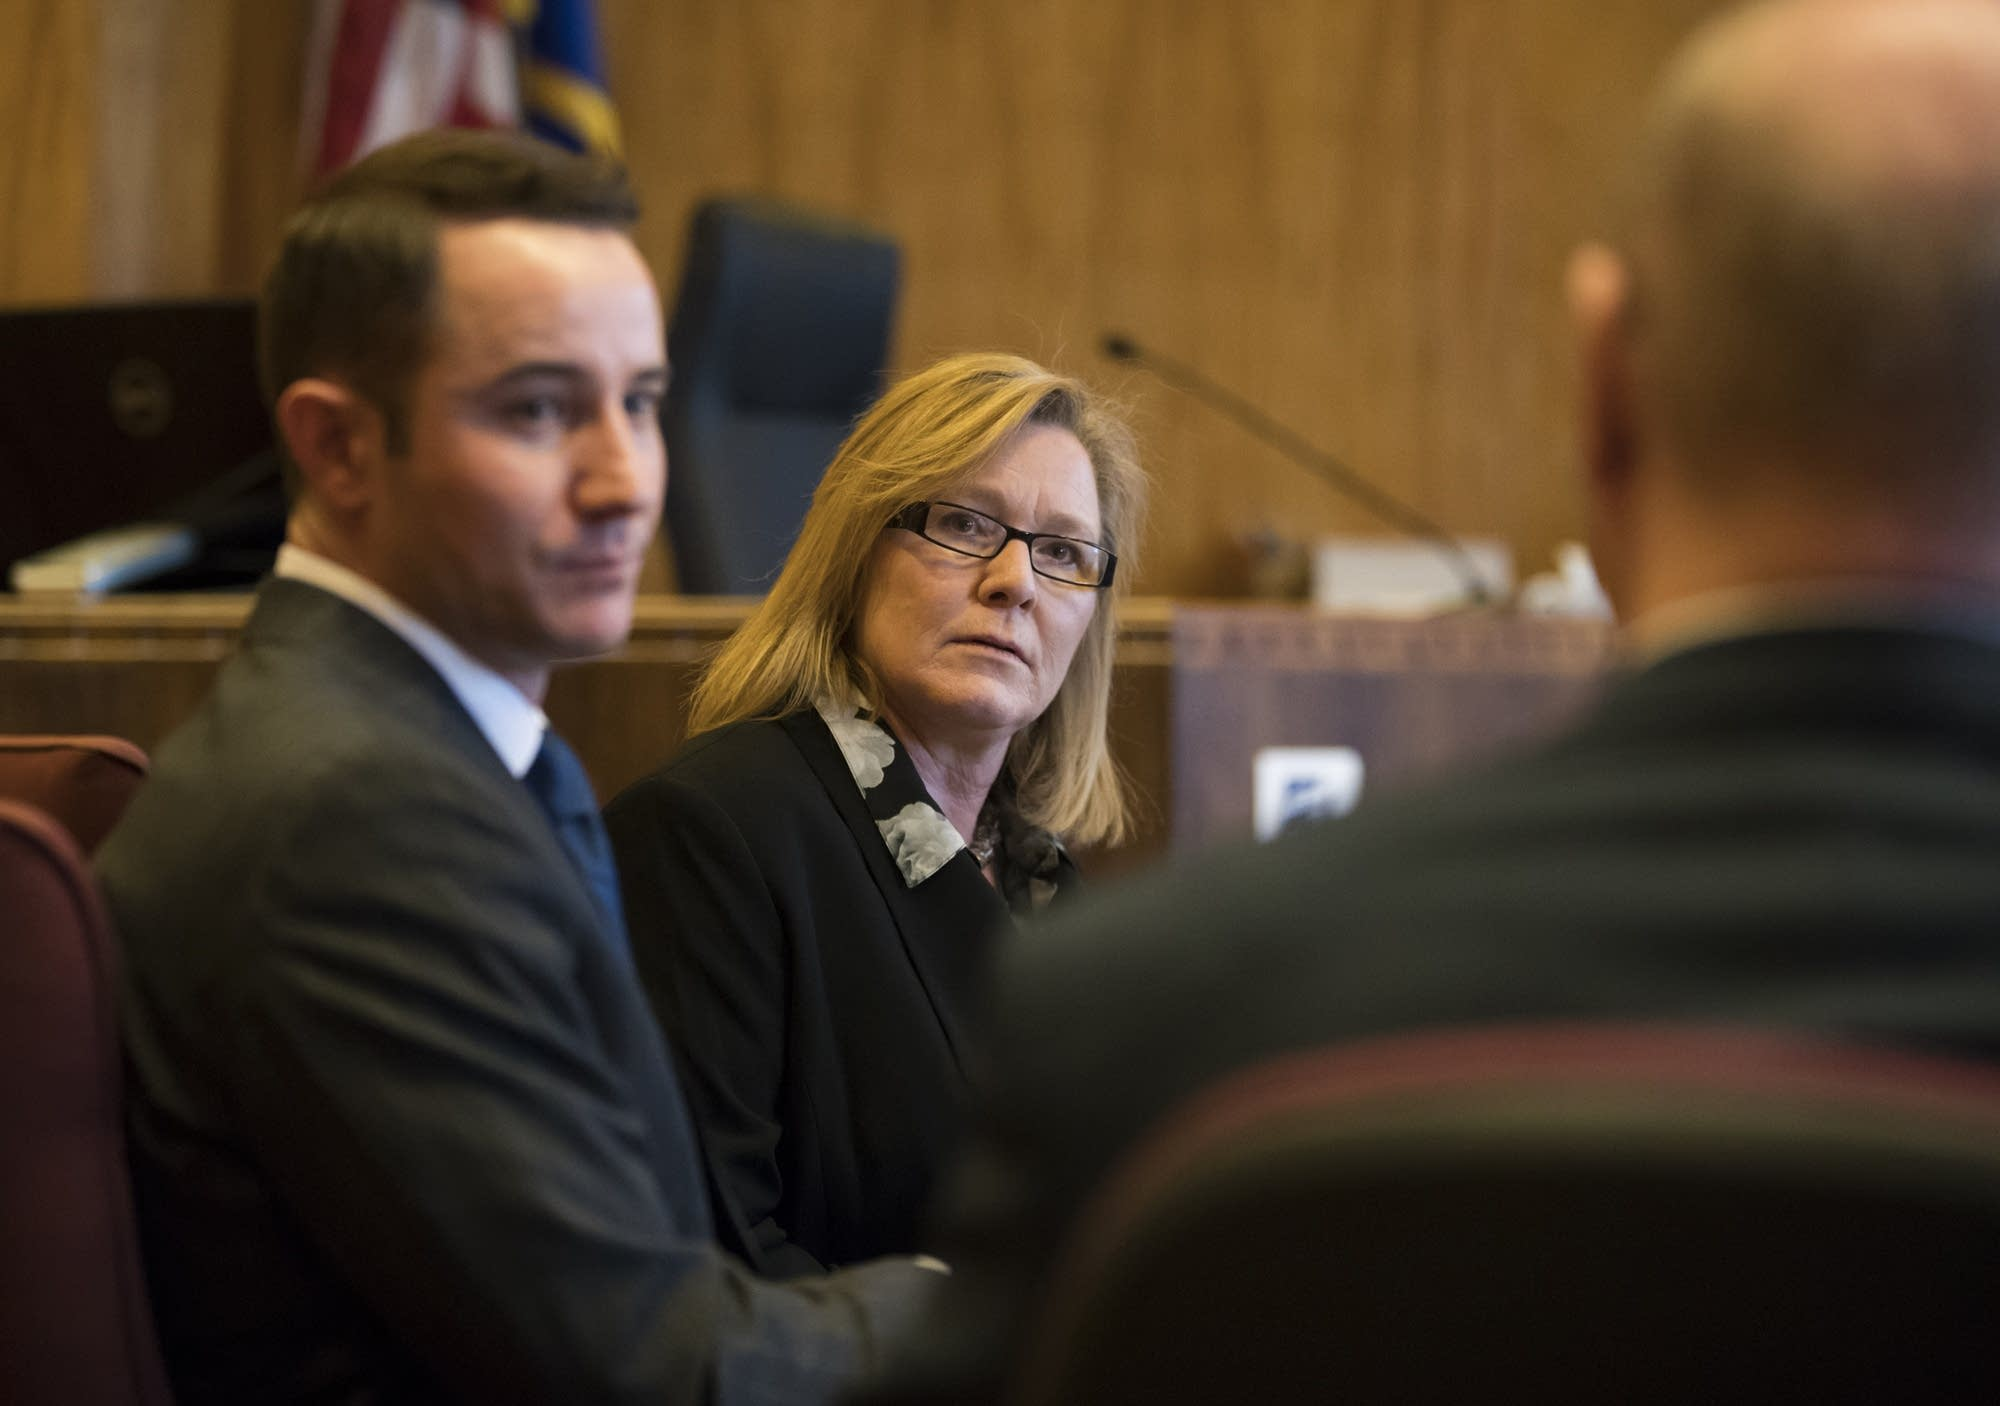 Lt. Gov. Michelle Fischbach chats with her lawyers.